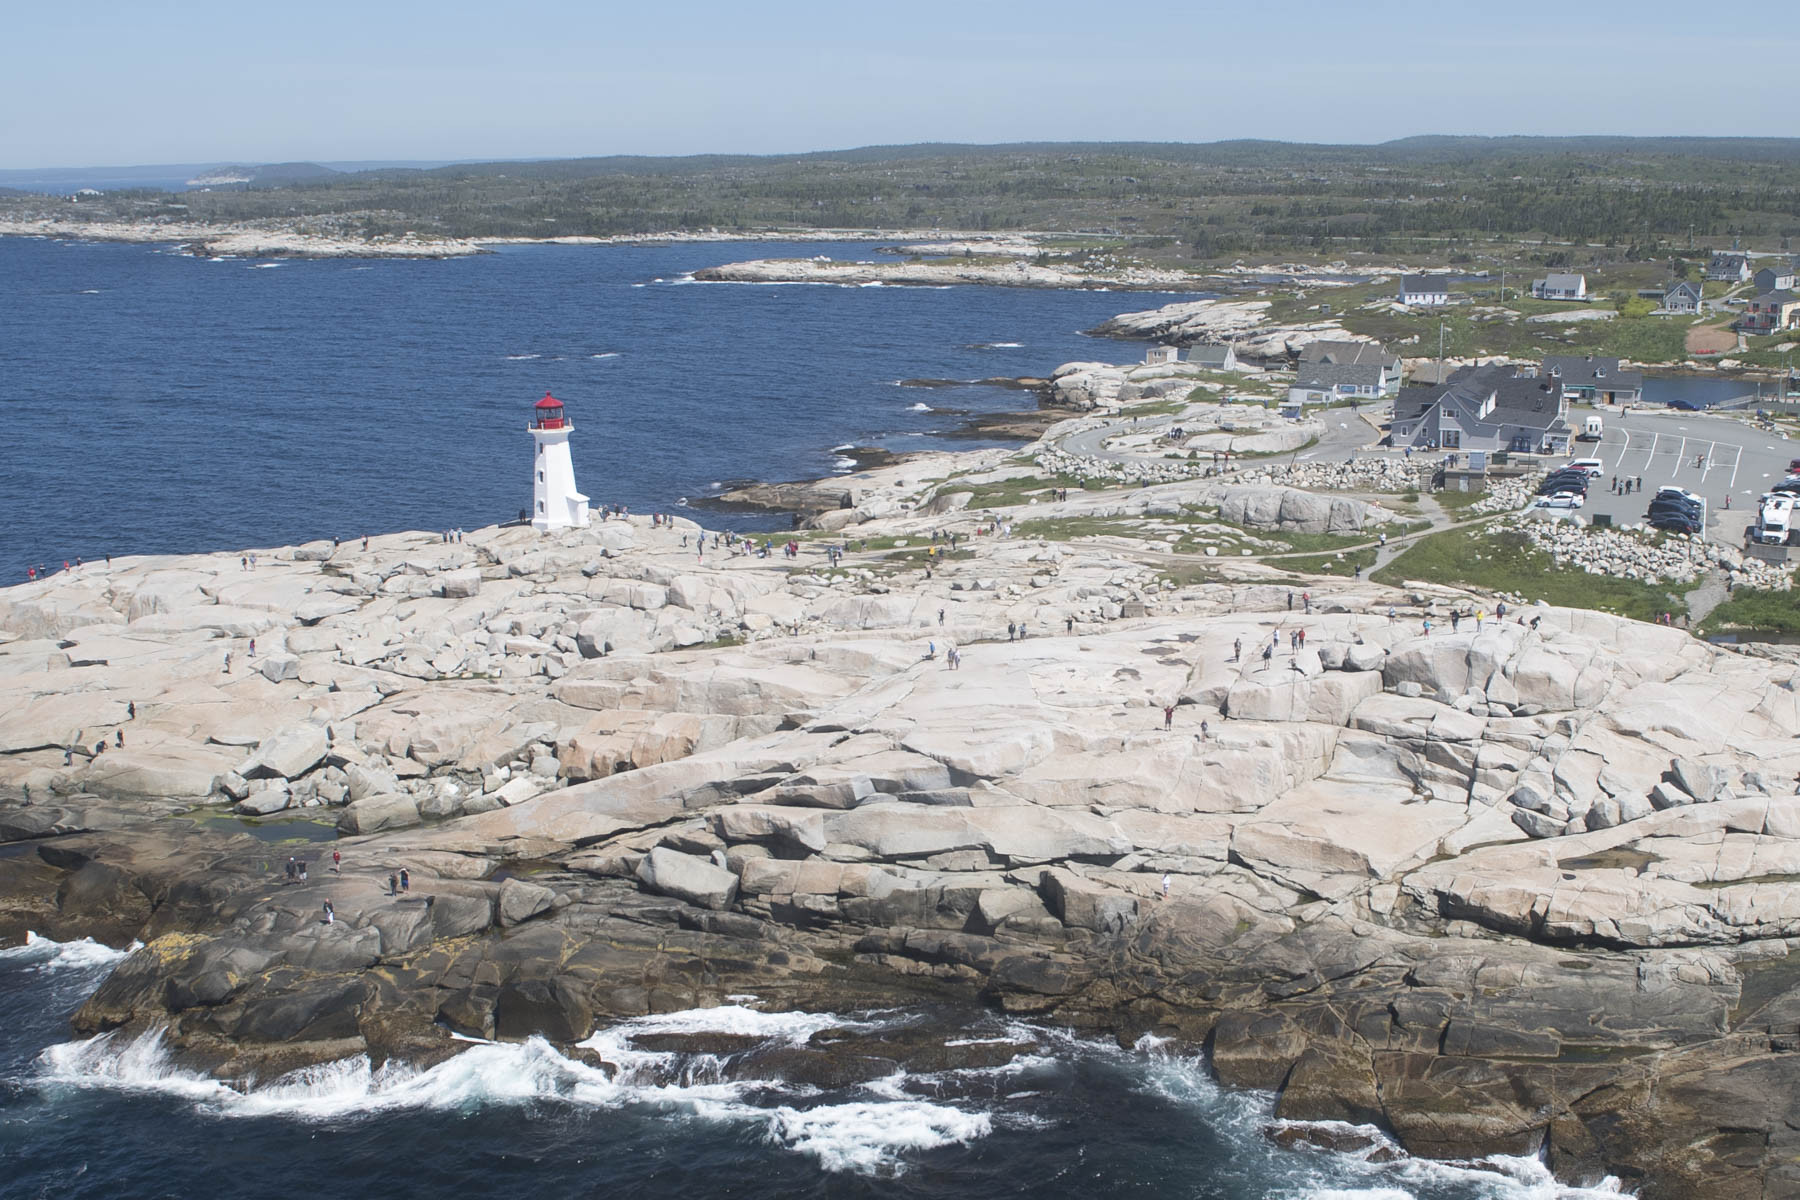 During the flight, the CH-148 Cyclone flew over Peggy's Cove.